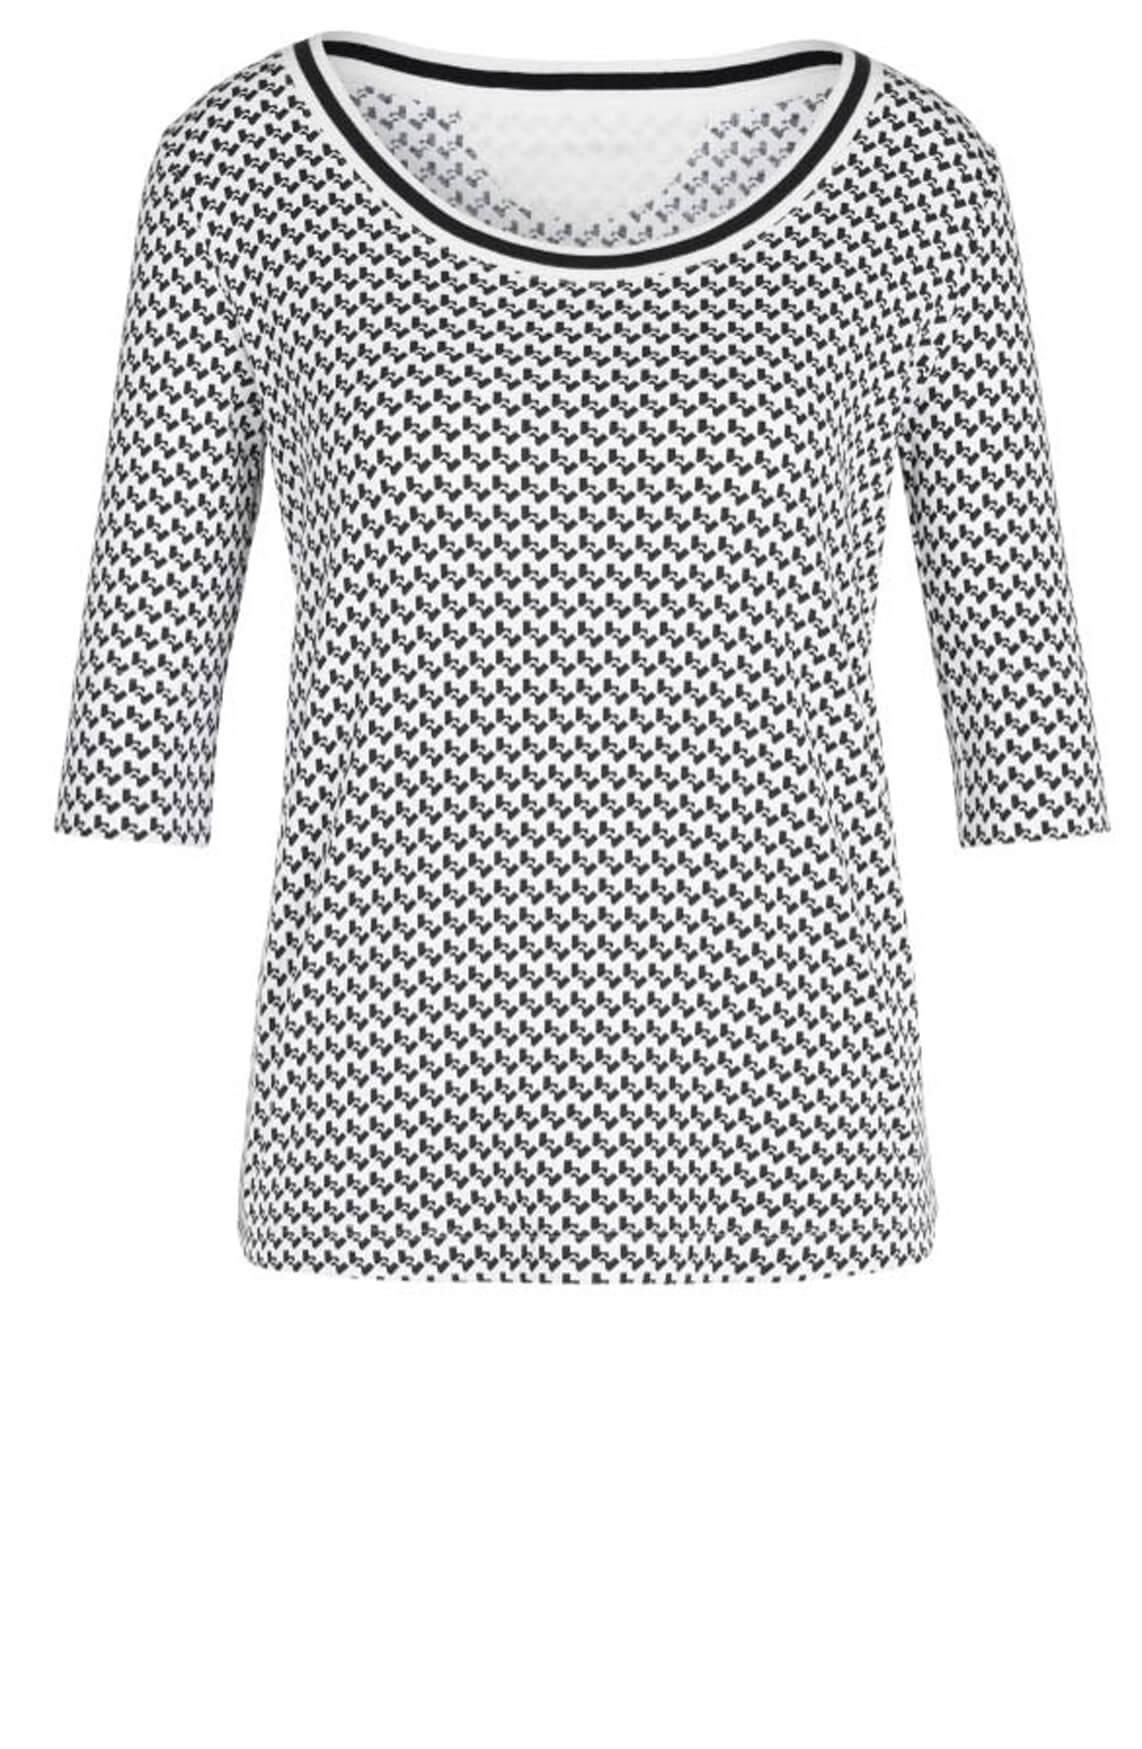 Marccain Sports Dames Grafisch shirt zwart